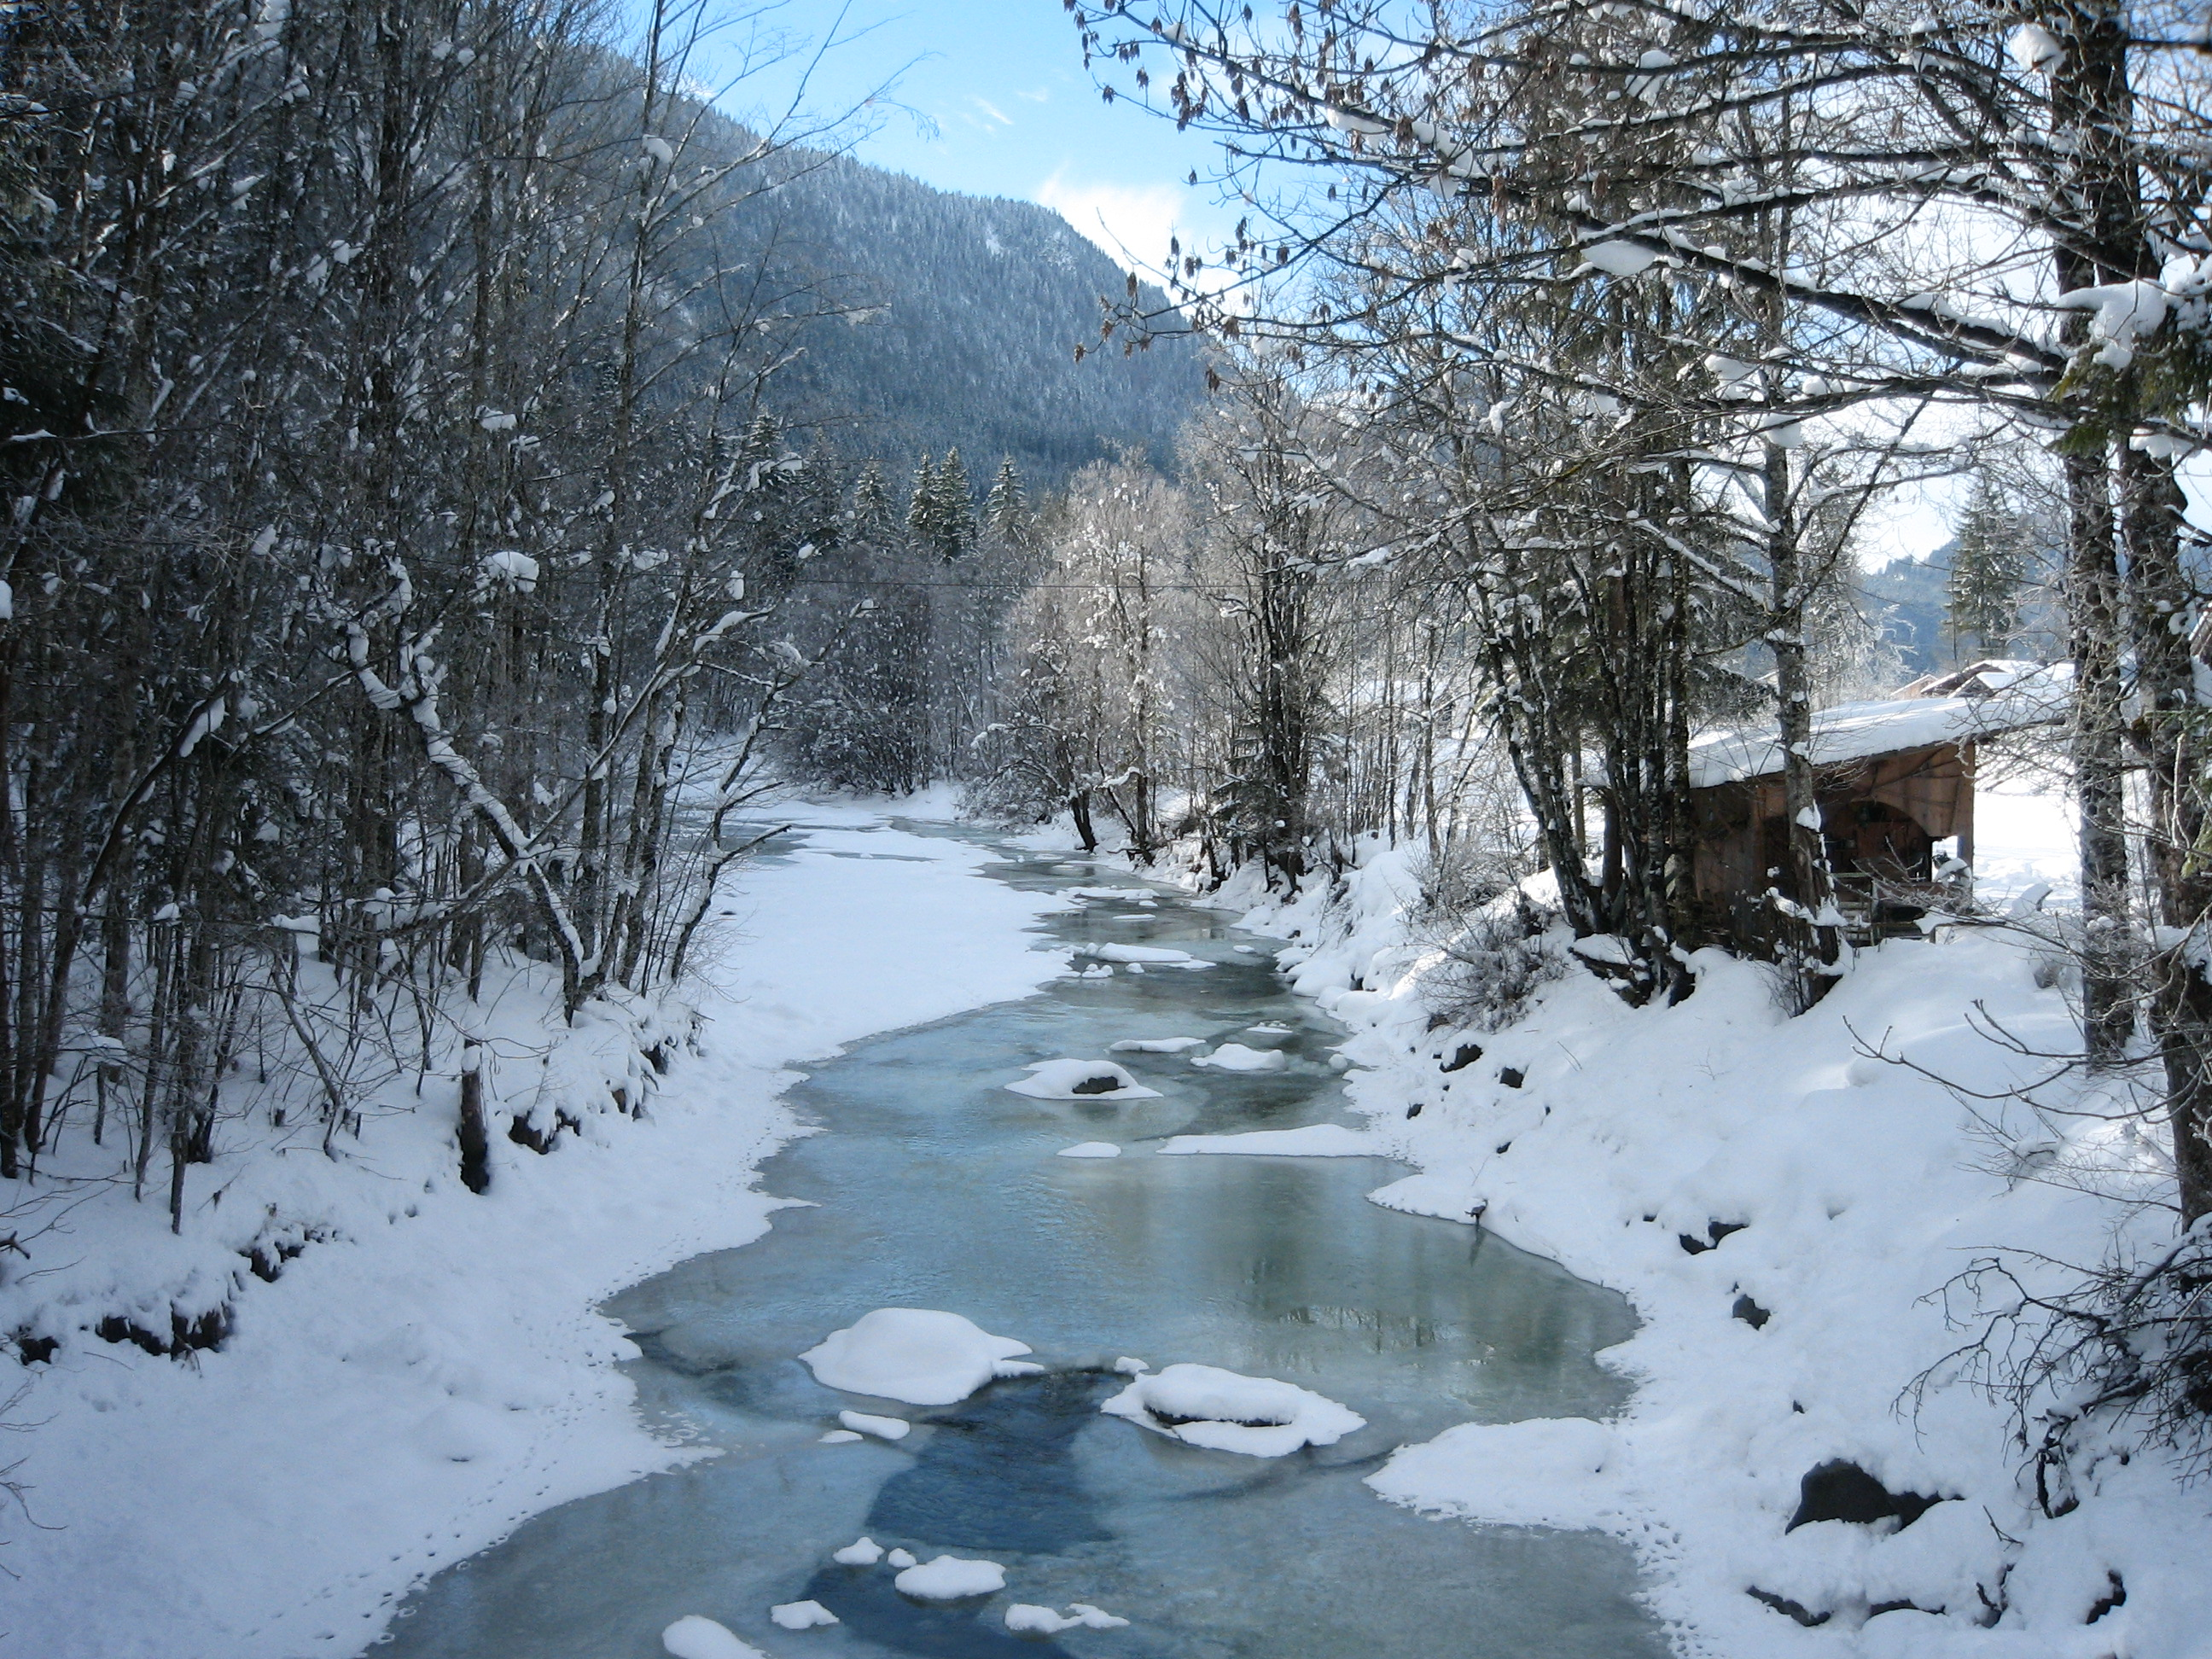 The_Jachen_stream_on_a_sunny_winter_day_Bavaria_Germany